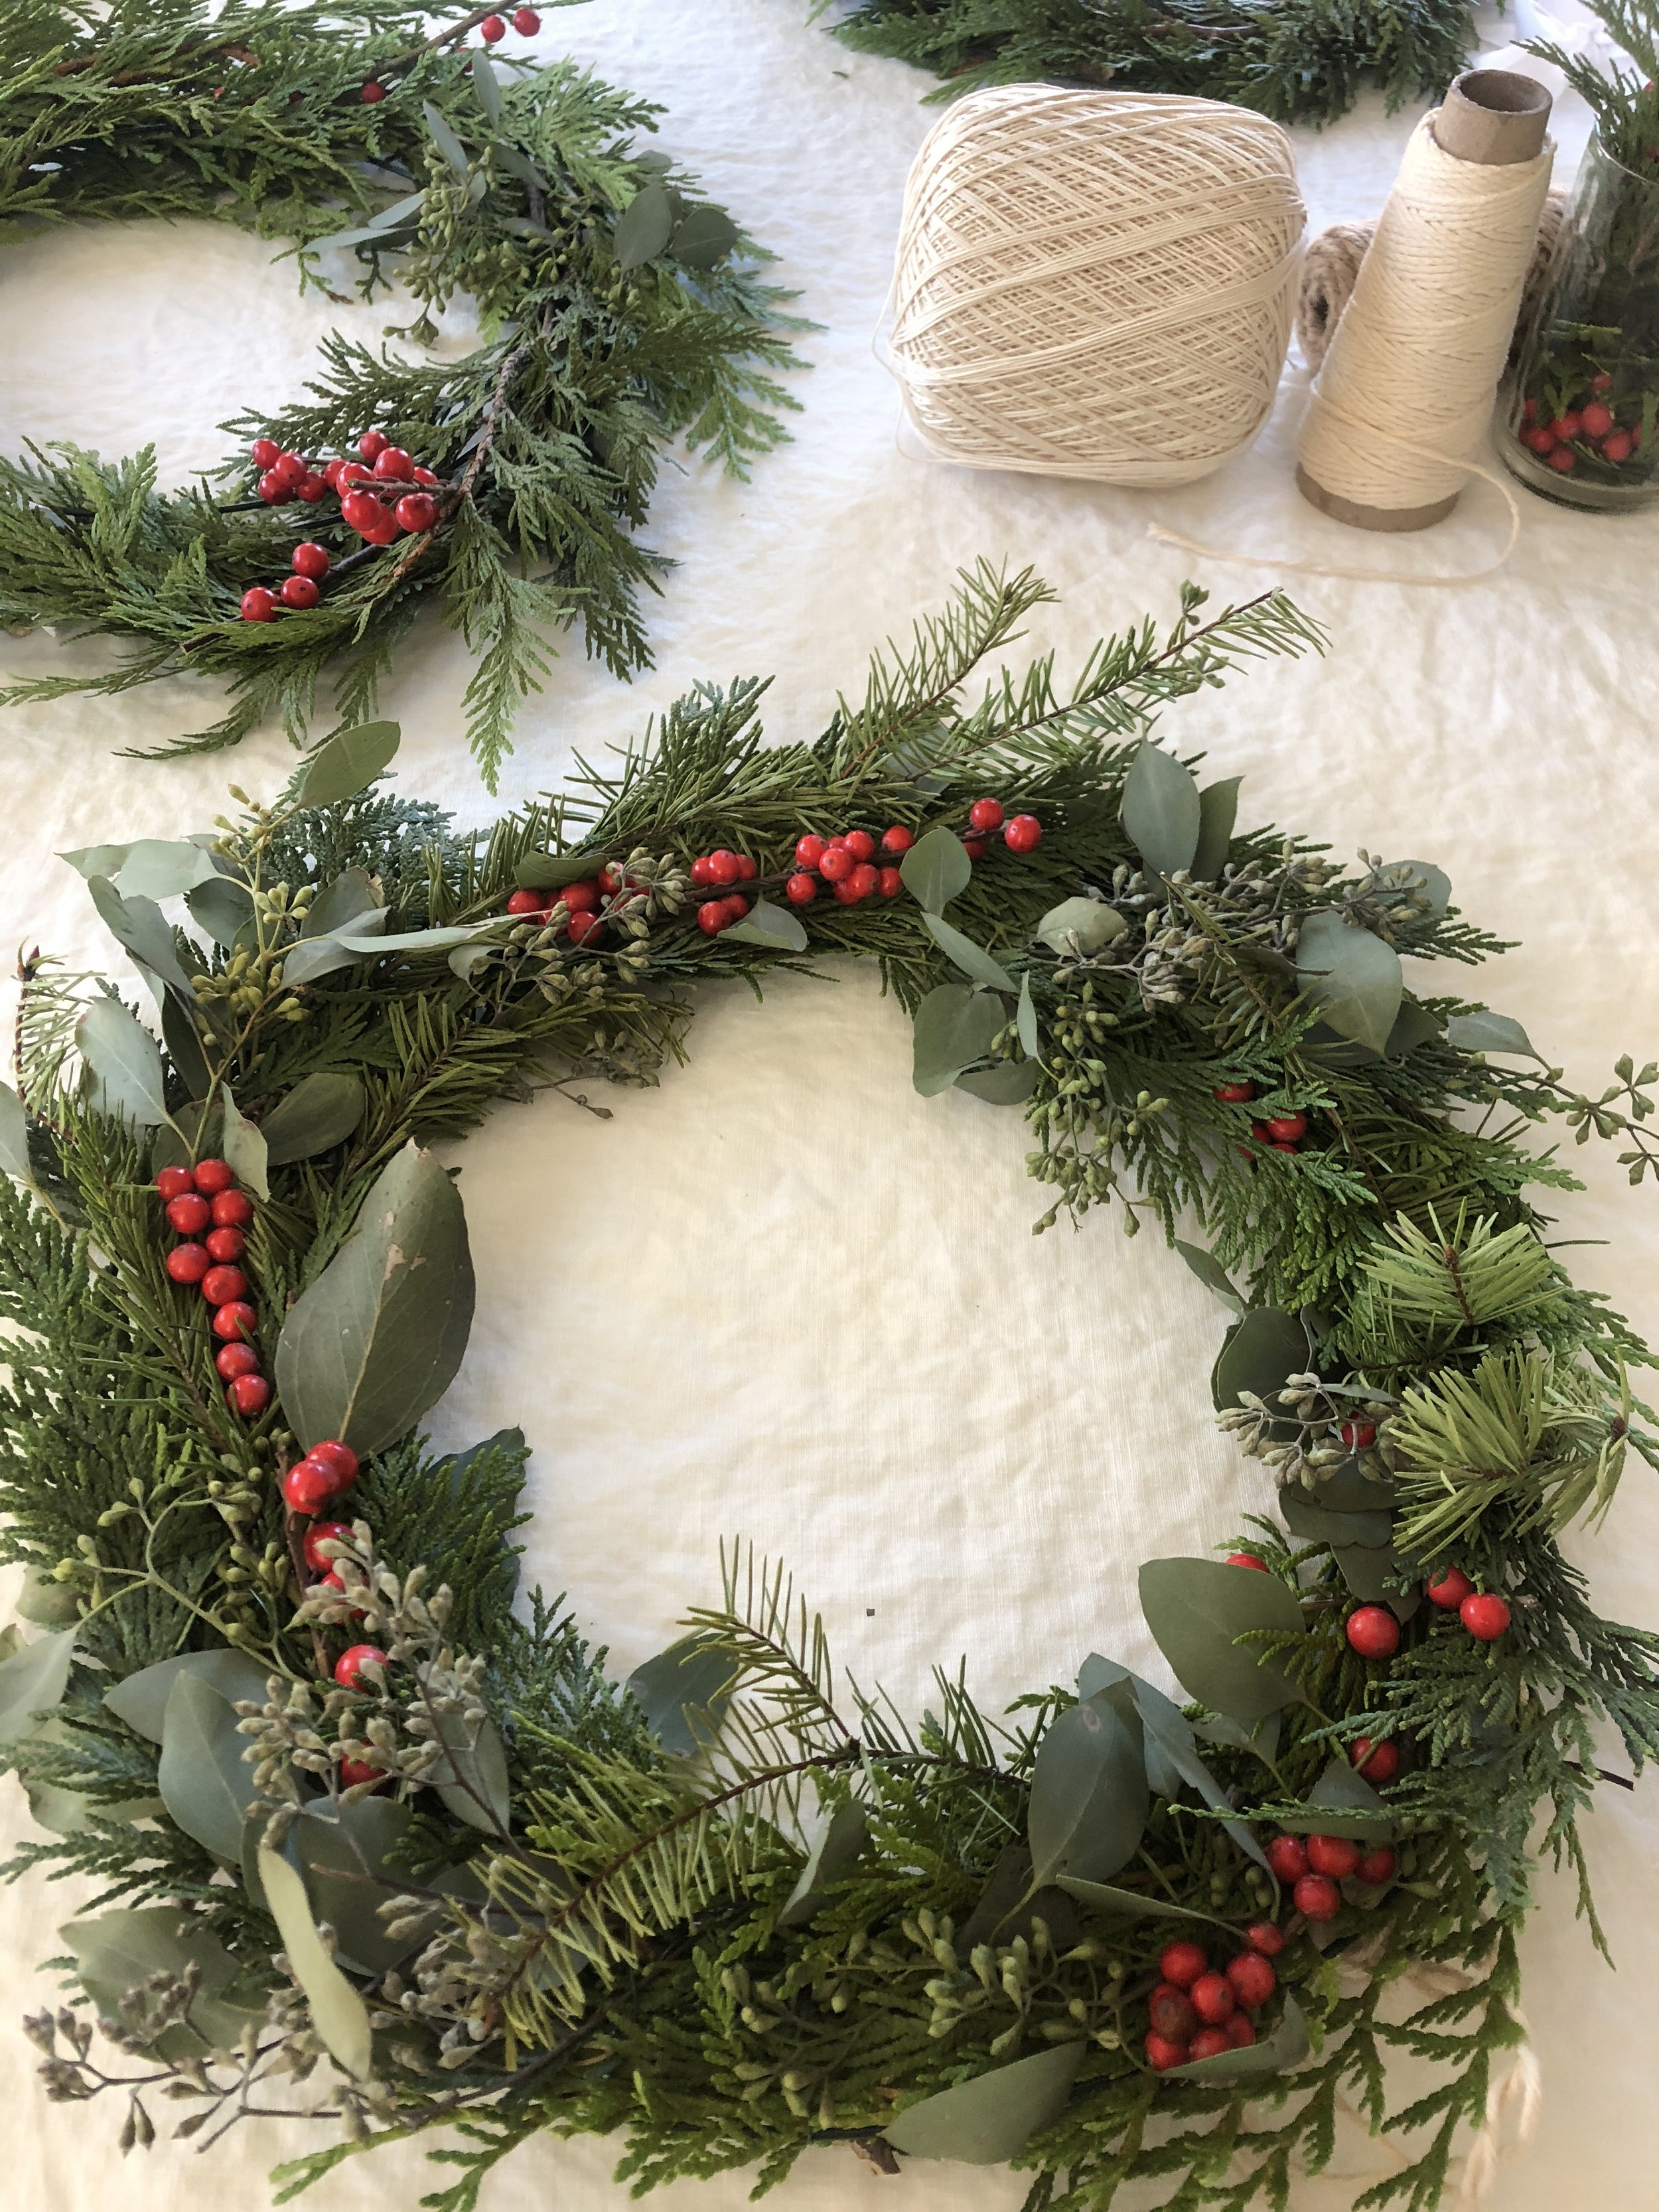 a few wreaths completed!